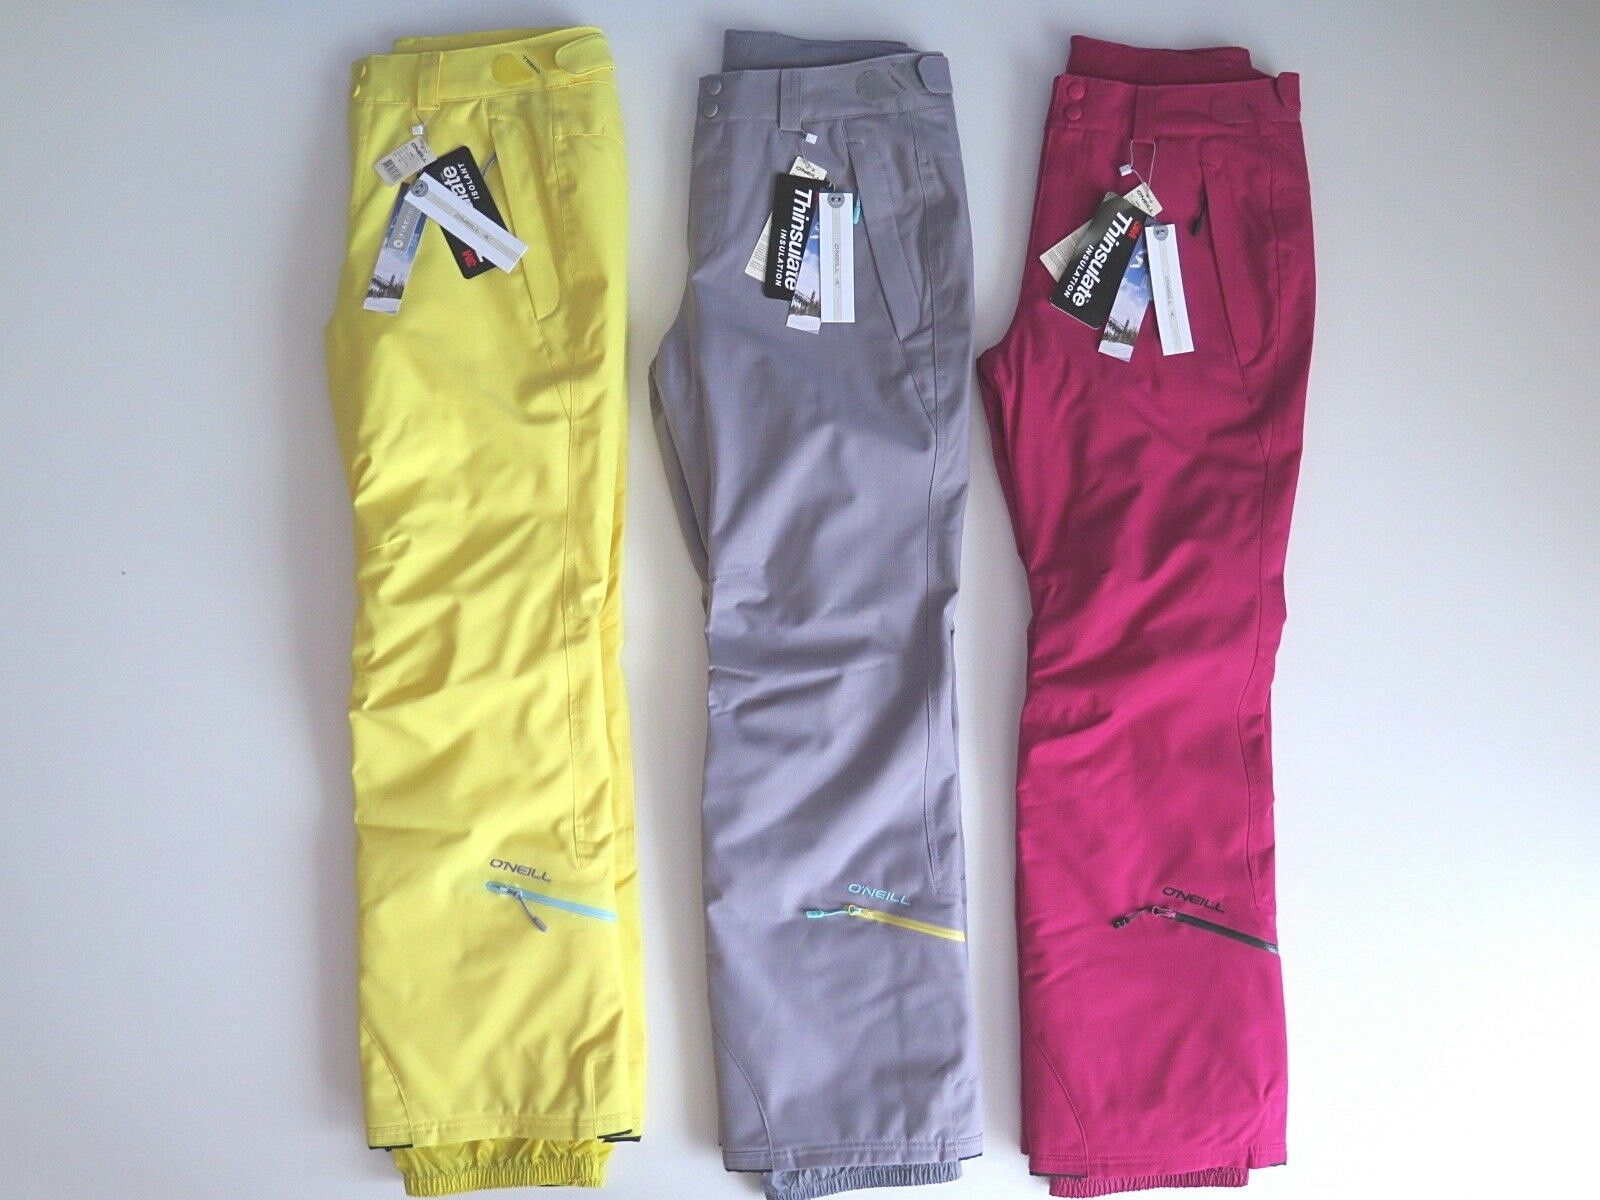 149,95 O'Neill PW Comet Ski Pant Ladies Ski  Trousers Snowboard Trousers 10k Stretch Size L  online shopping and fashion store